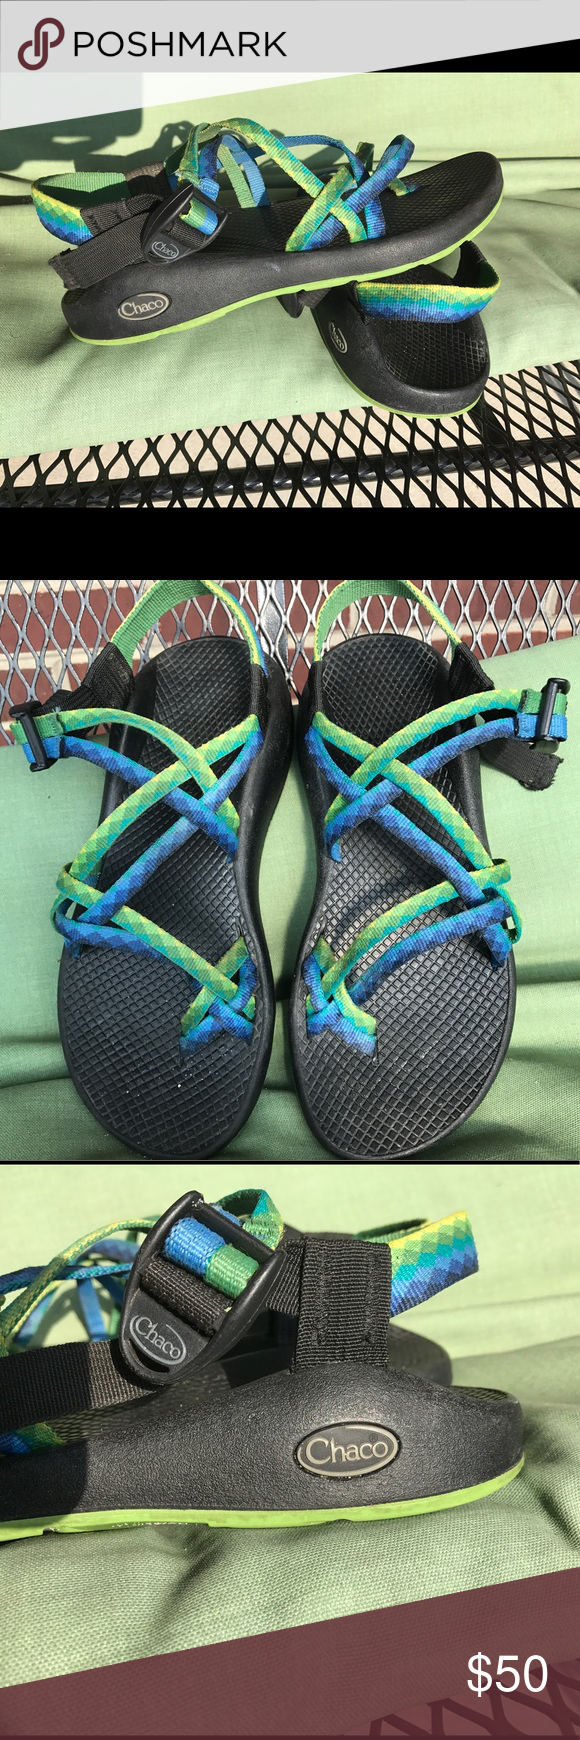 Women's vibrant chacos These bright yellow, green, blue size 8 chacos  are looking for a new pair of feet! Chaco Shoes Athletic Shoes